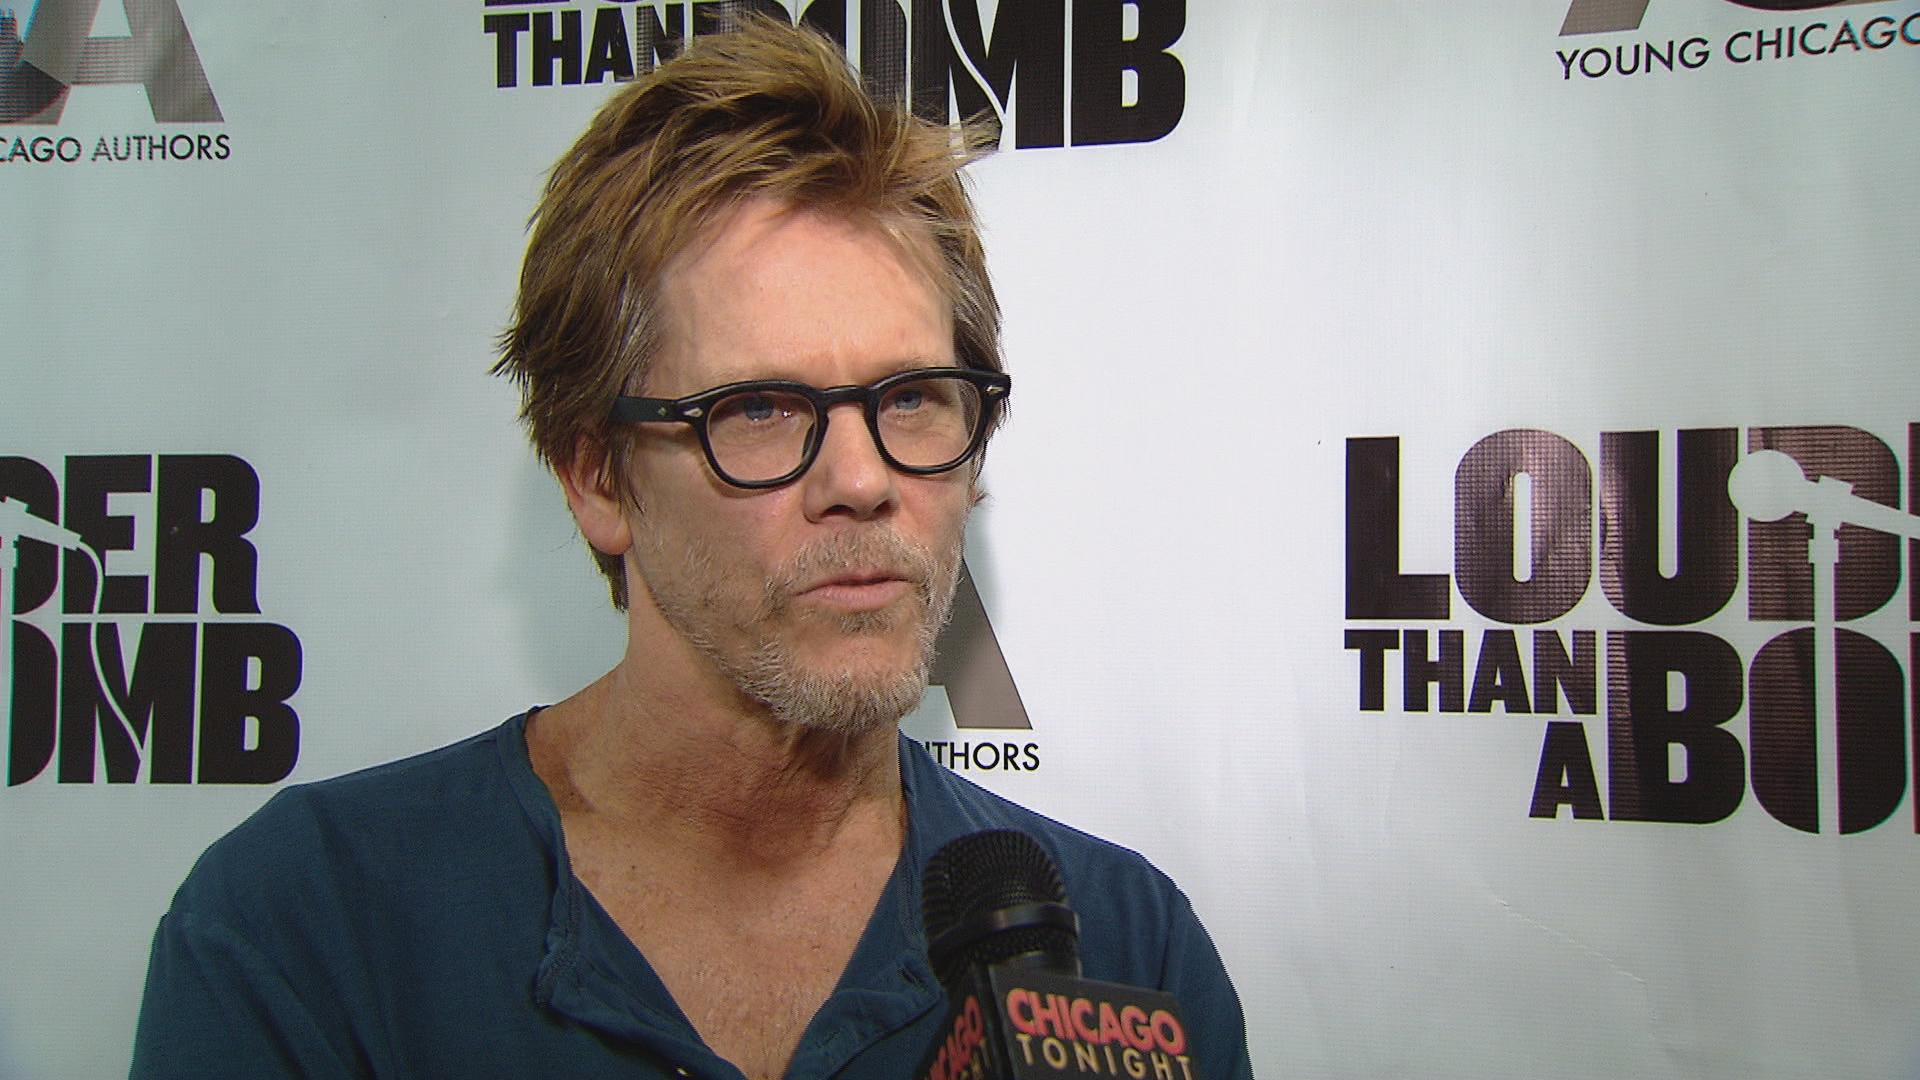 Actor Kevin Bacon Speaks With Young Chicago Authors Chicago News 1920x1080